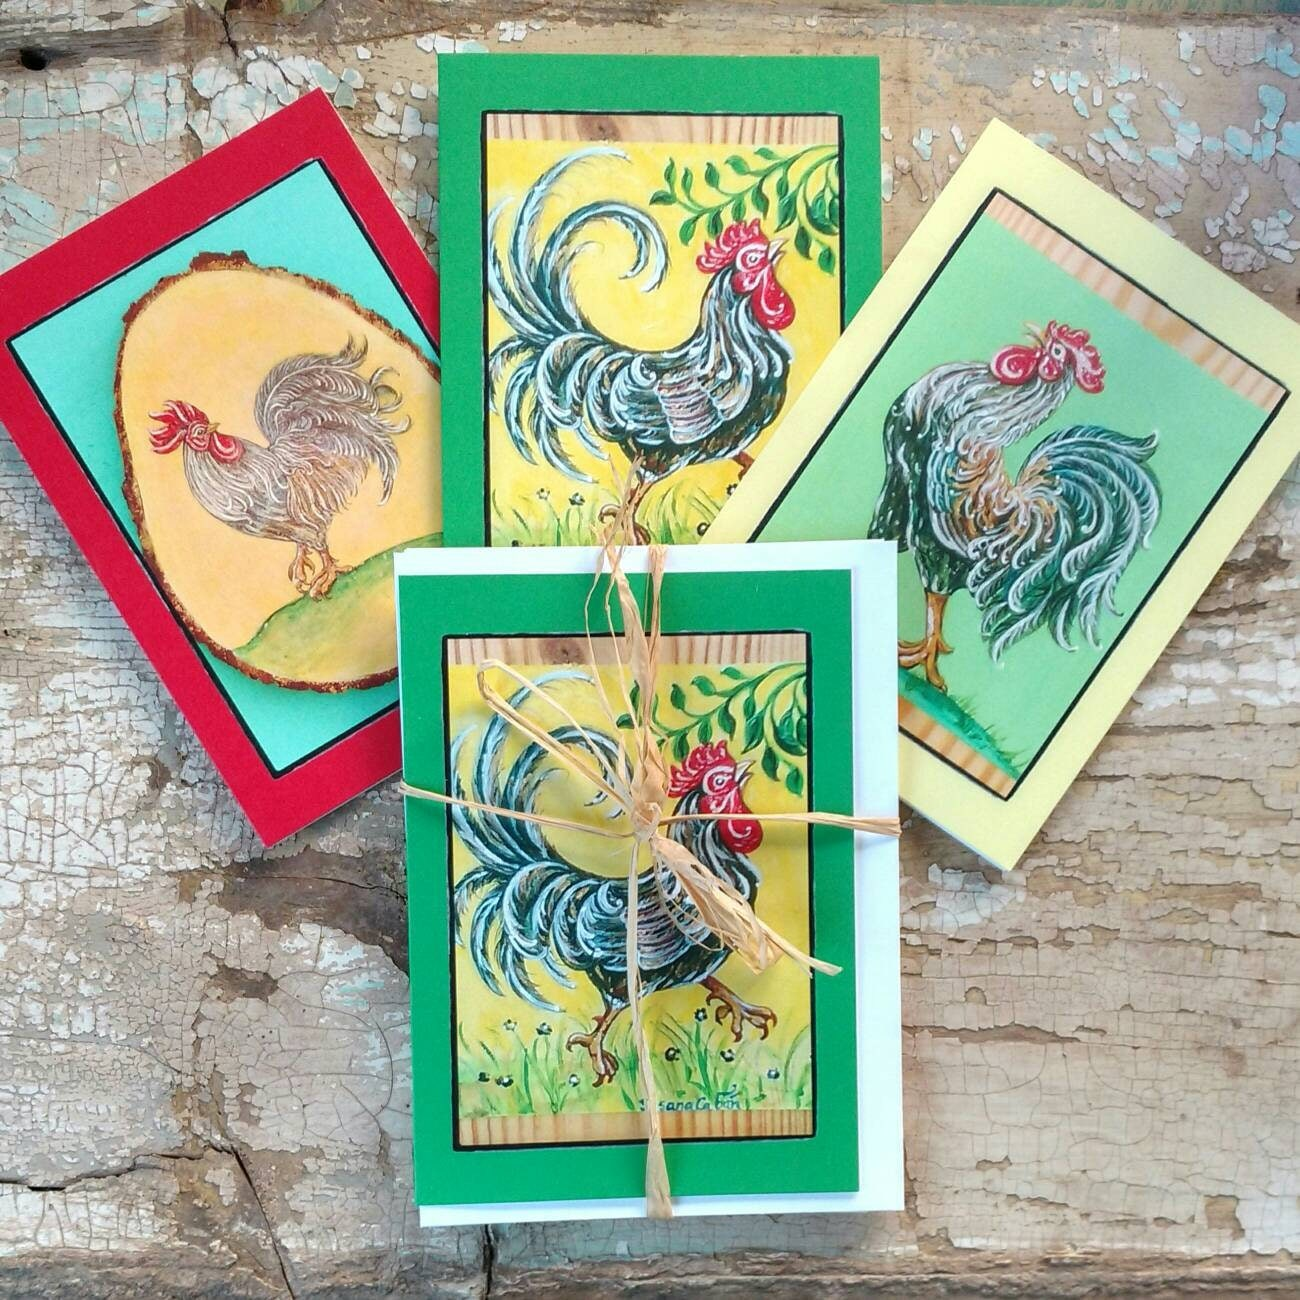 Tropical french rooster greeting card set of 3 different cards tropical french rooster greeting card set of 3 different cards designed by susana caban blank note cards farm house decor and gift m4hsunfo